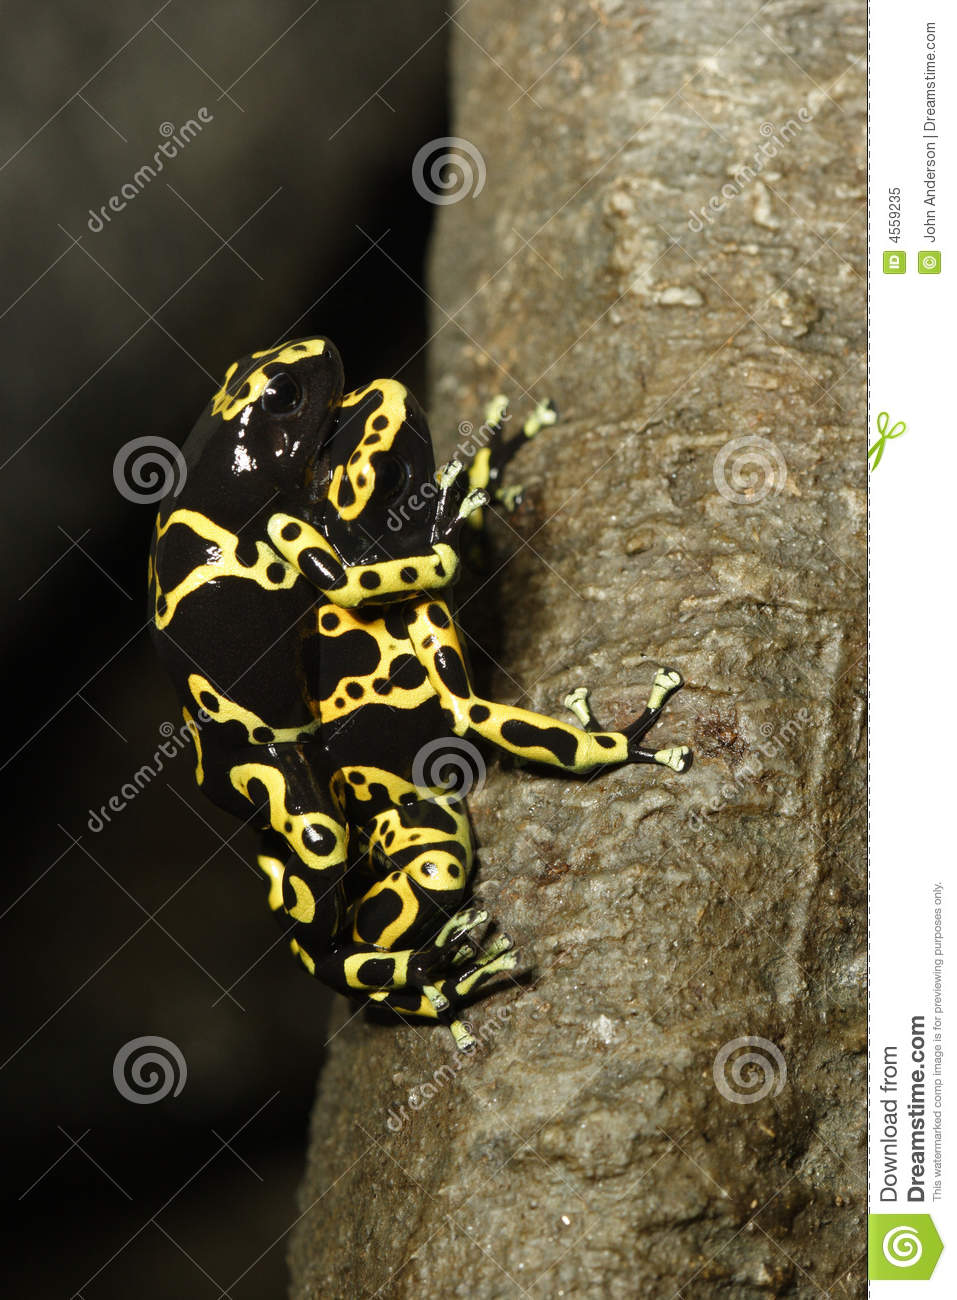 Royalty Free Stock Photo: Frog sex: http://www.dreamstime.com/royalty-free-stock-photo-frog-sex-image4559235